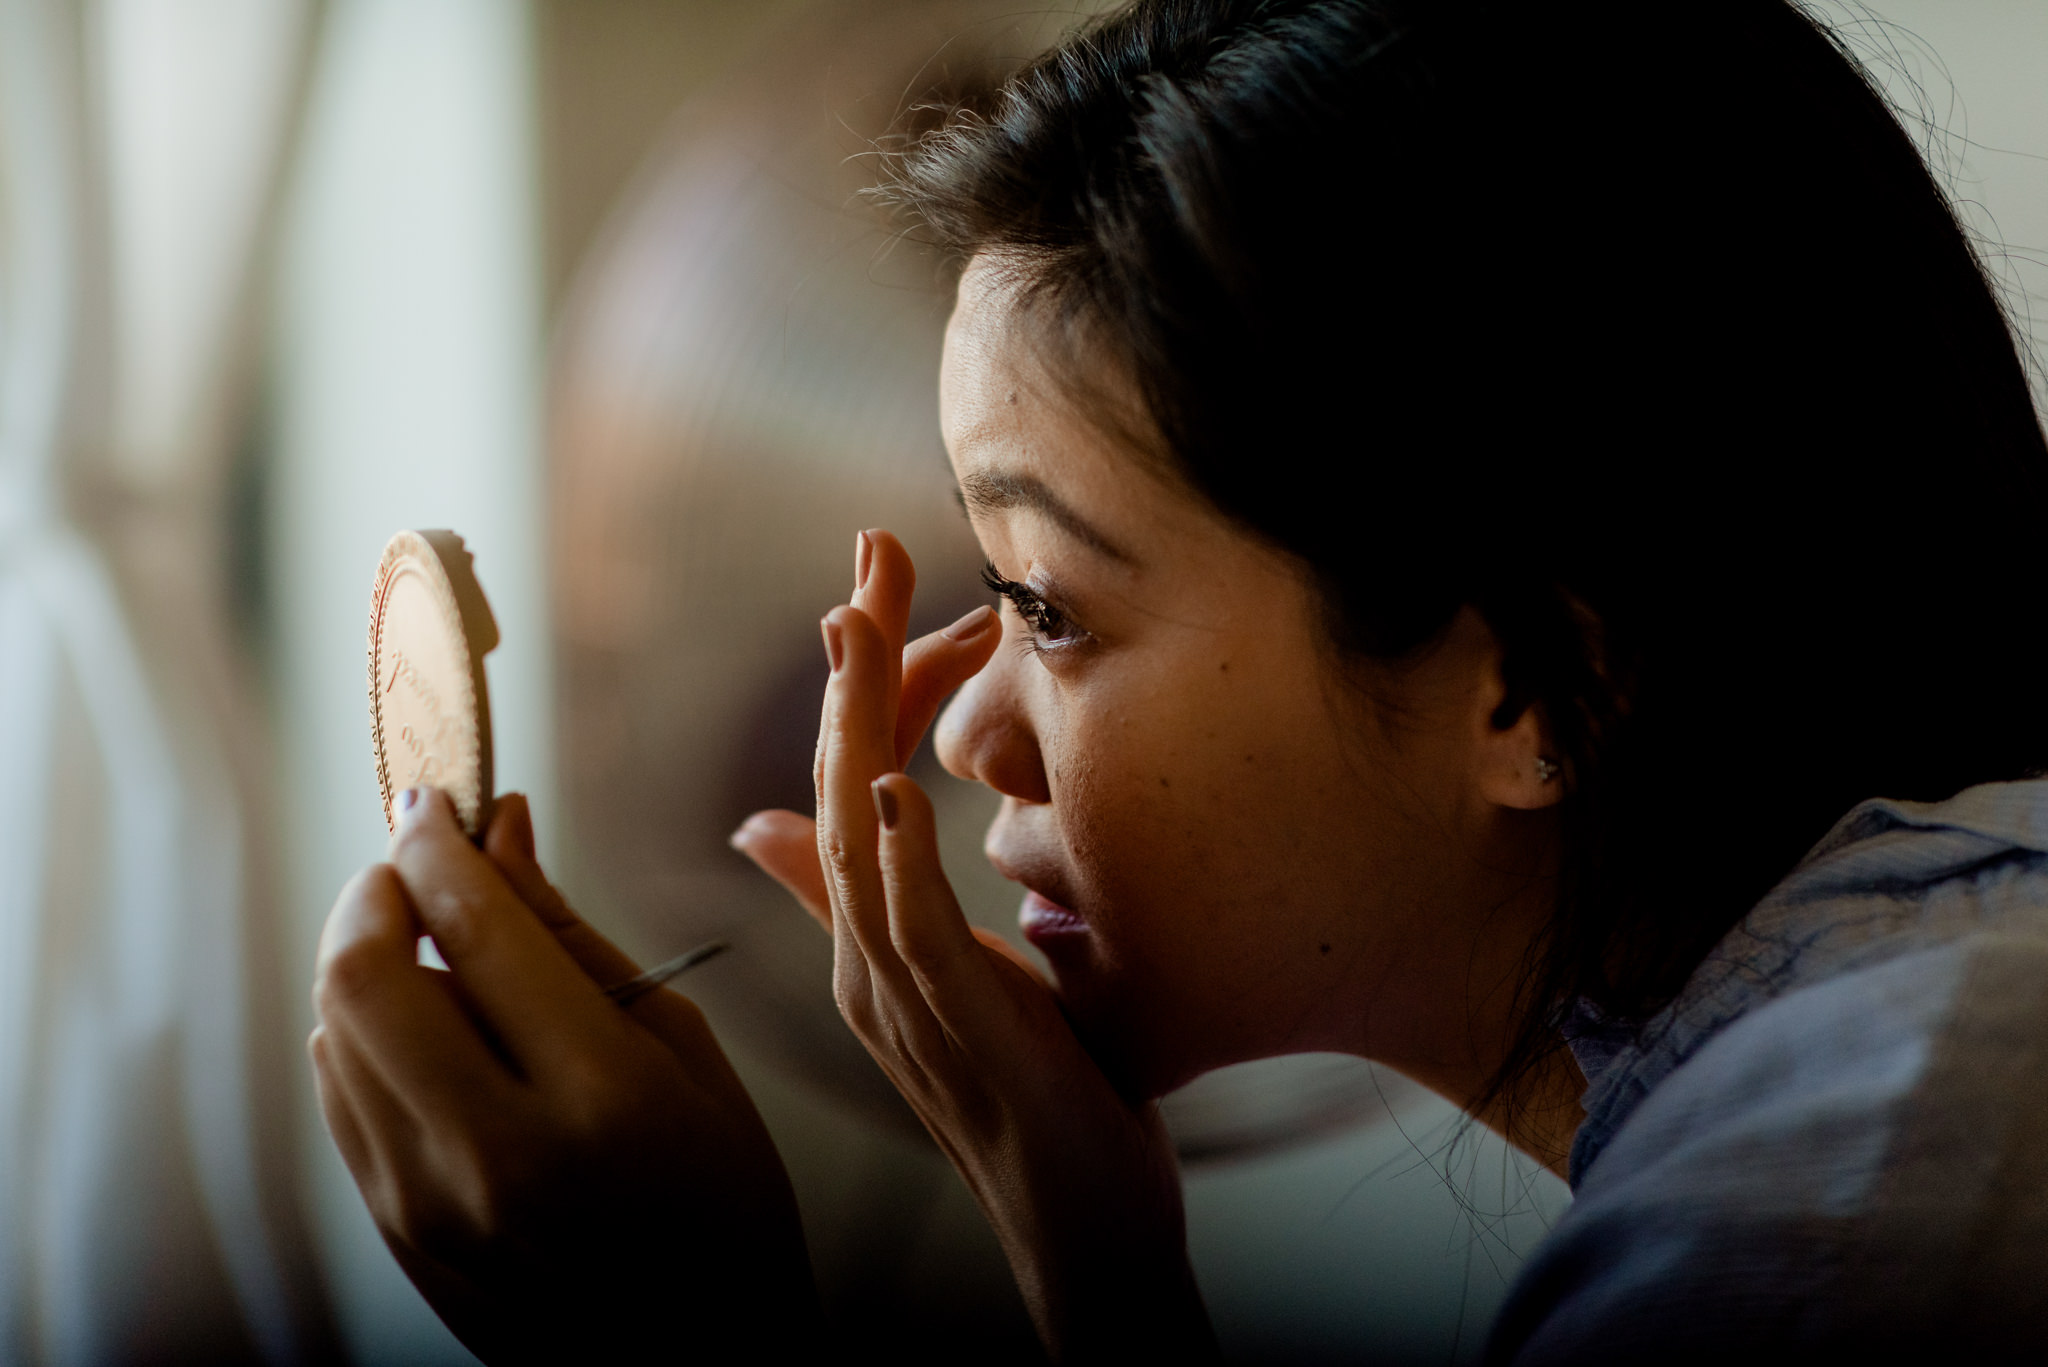 A girl using her fingers to apply eyelashes looking in a handheld pocket mirror